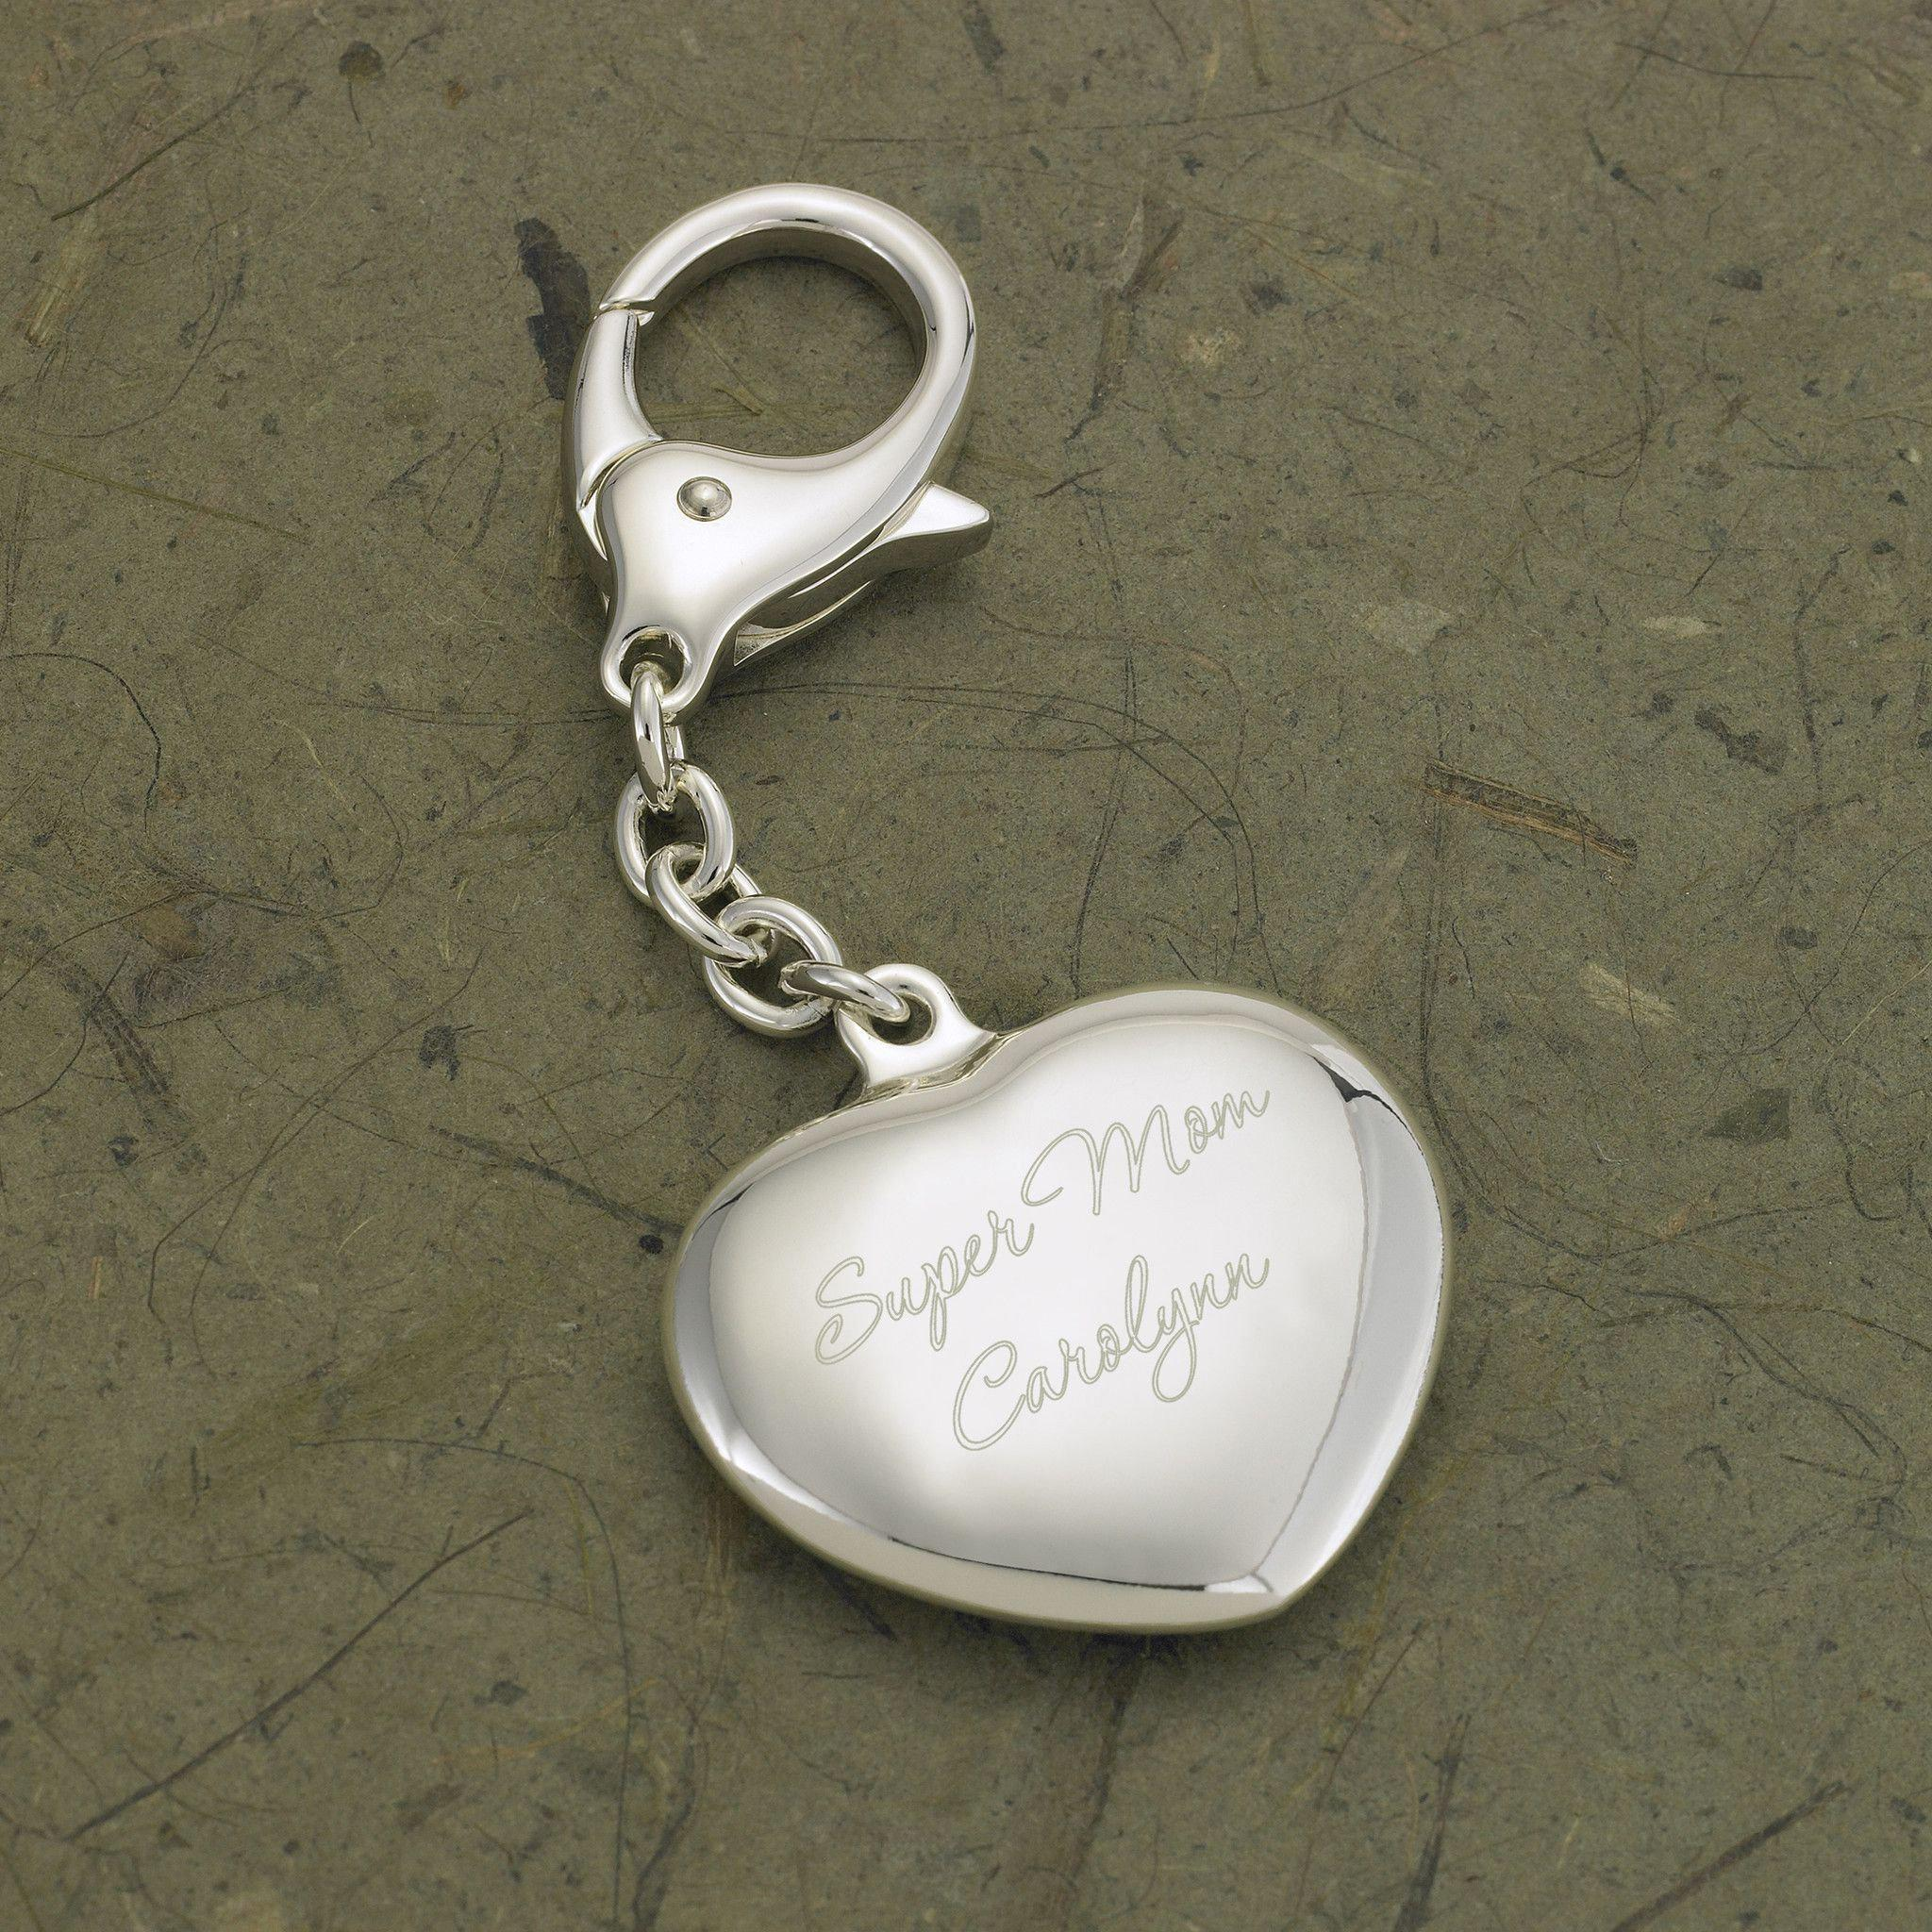 Personalized-Heart-Silver-Plated-Key-Chain